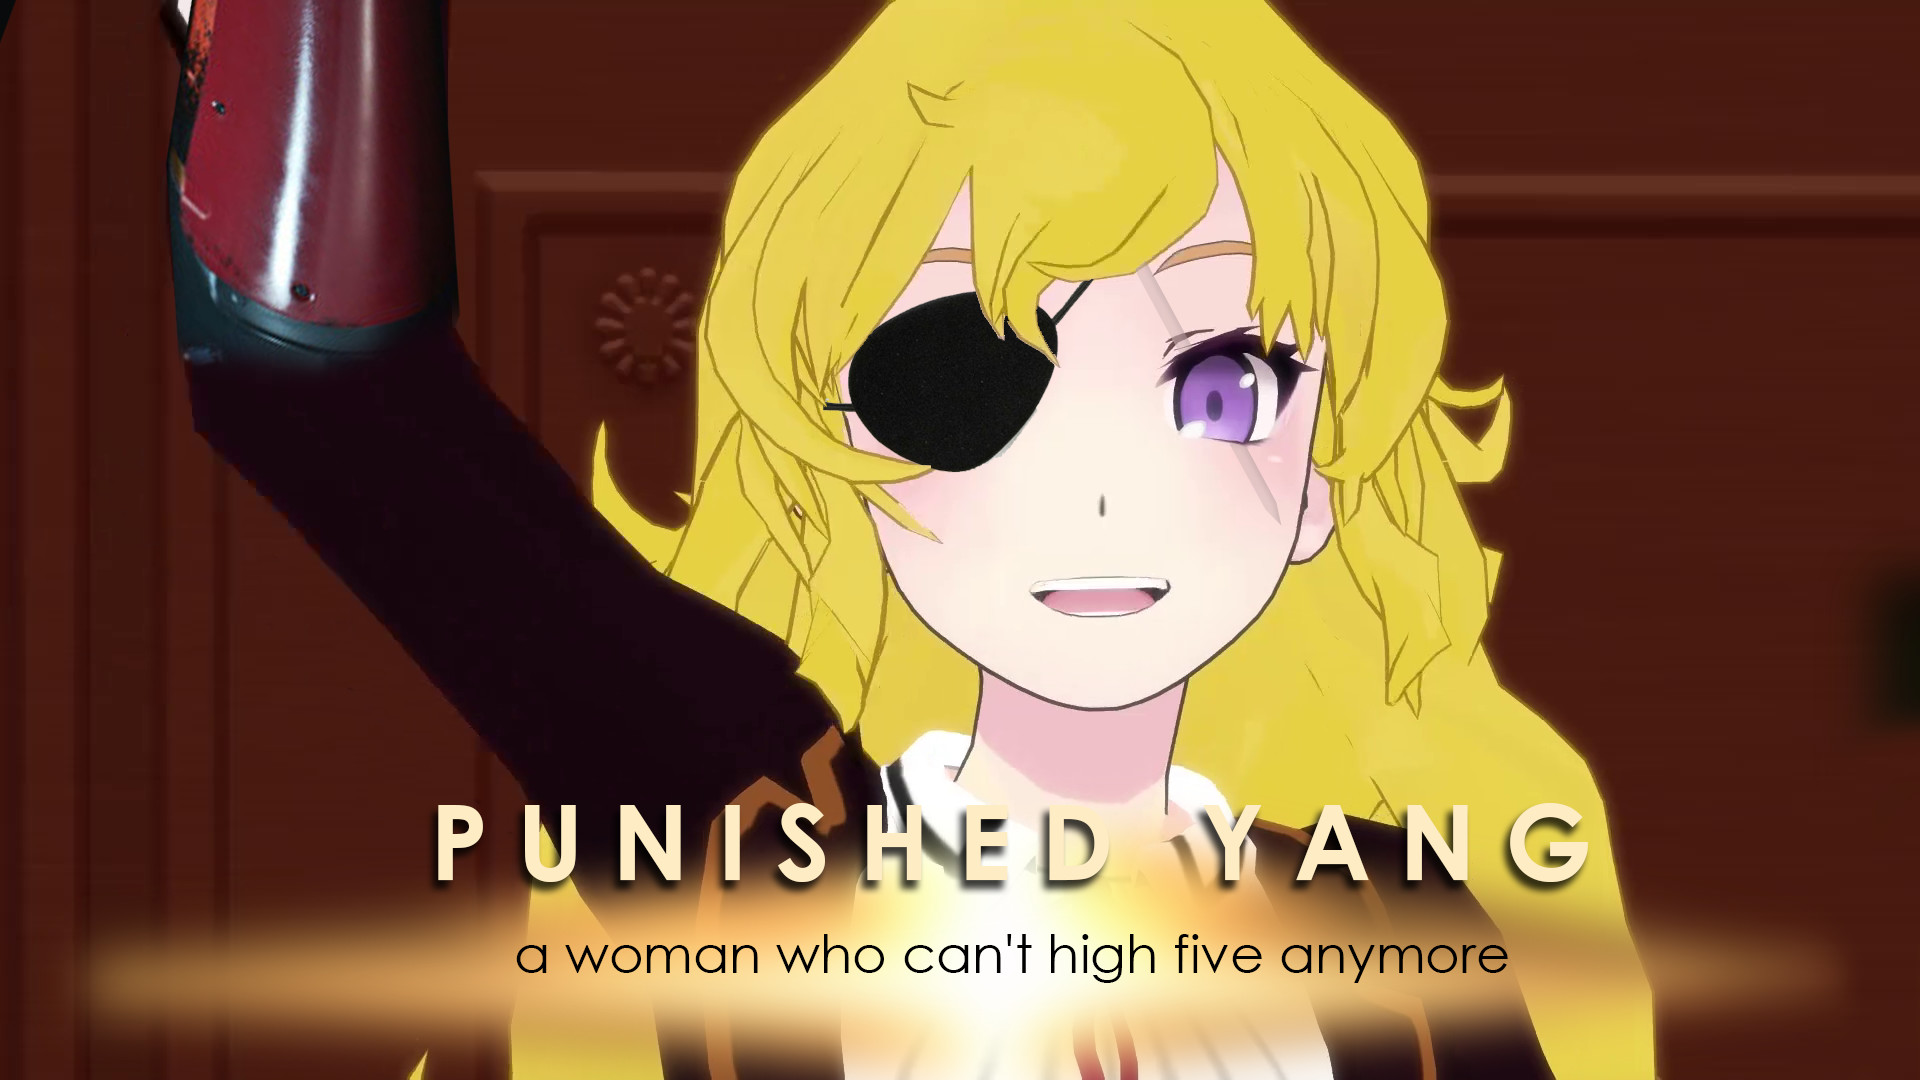 Res: 1920x1080, PUNIS a woman who can't high five anymore